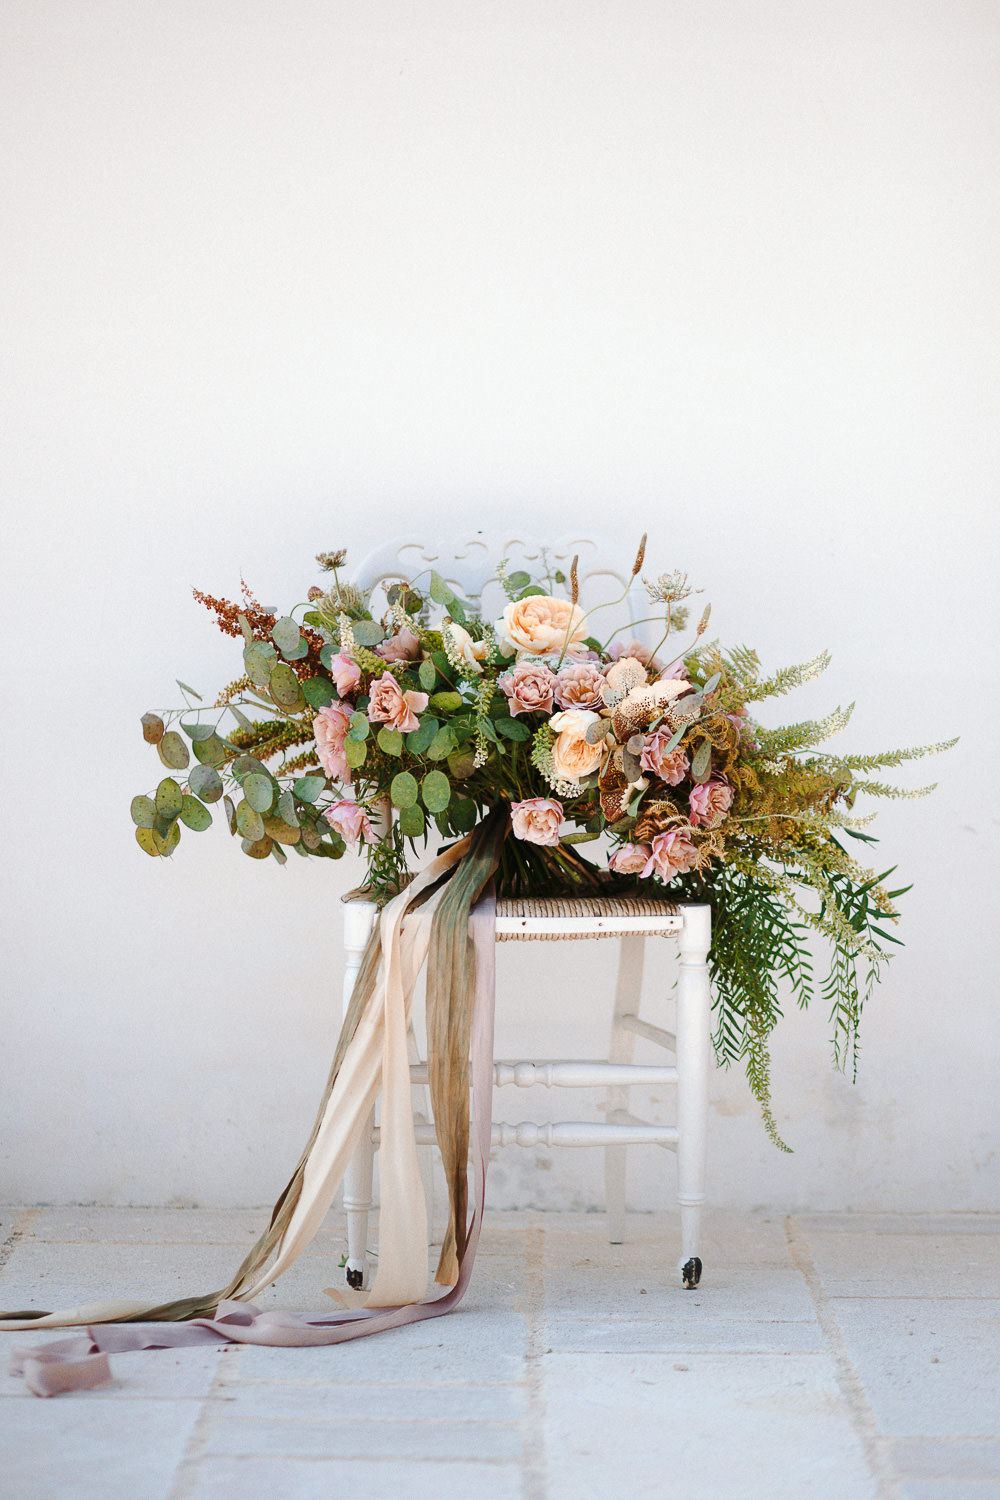 Gorgeous-wedding-bouquet-by-Chiara-Sperti-Camilla-Anchisi-Photography